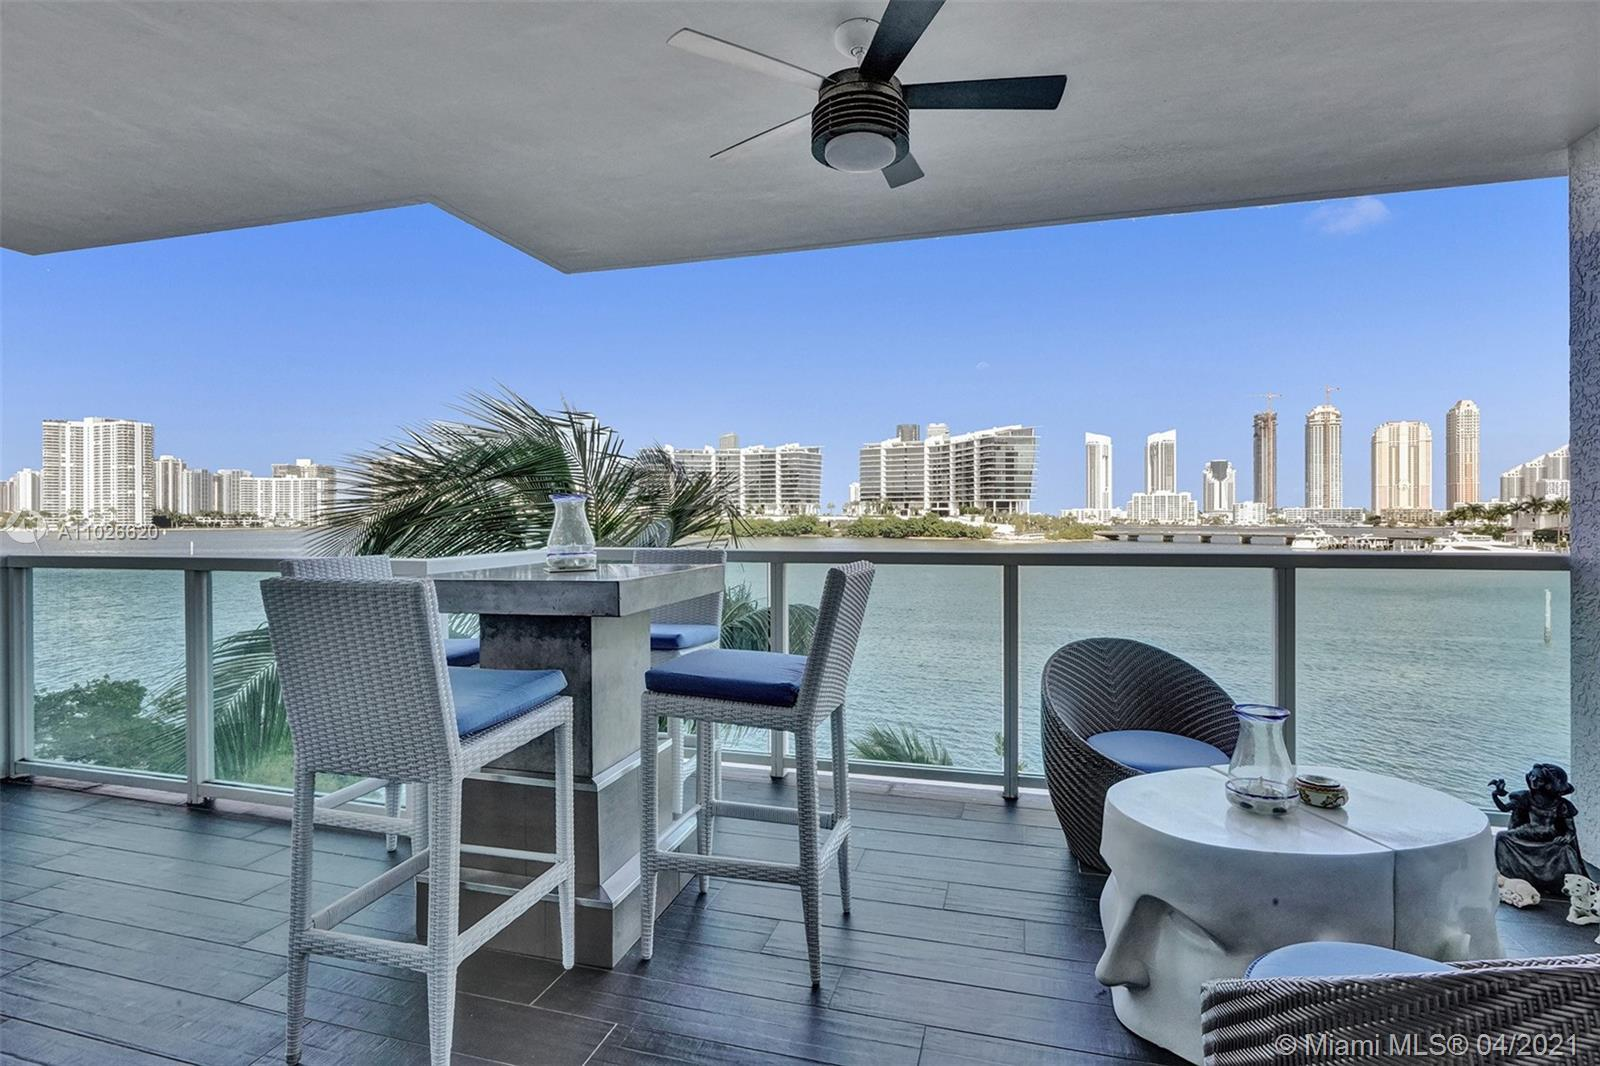 Come home to paradise every day in this waterfront apartment. Step through your dramatic private foy